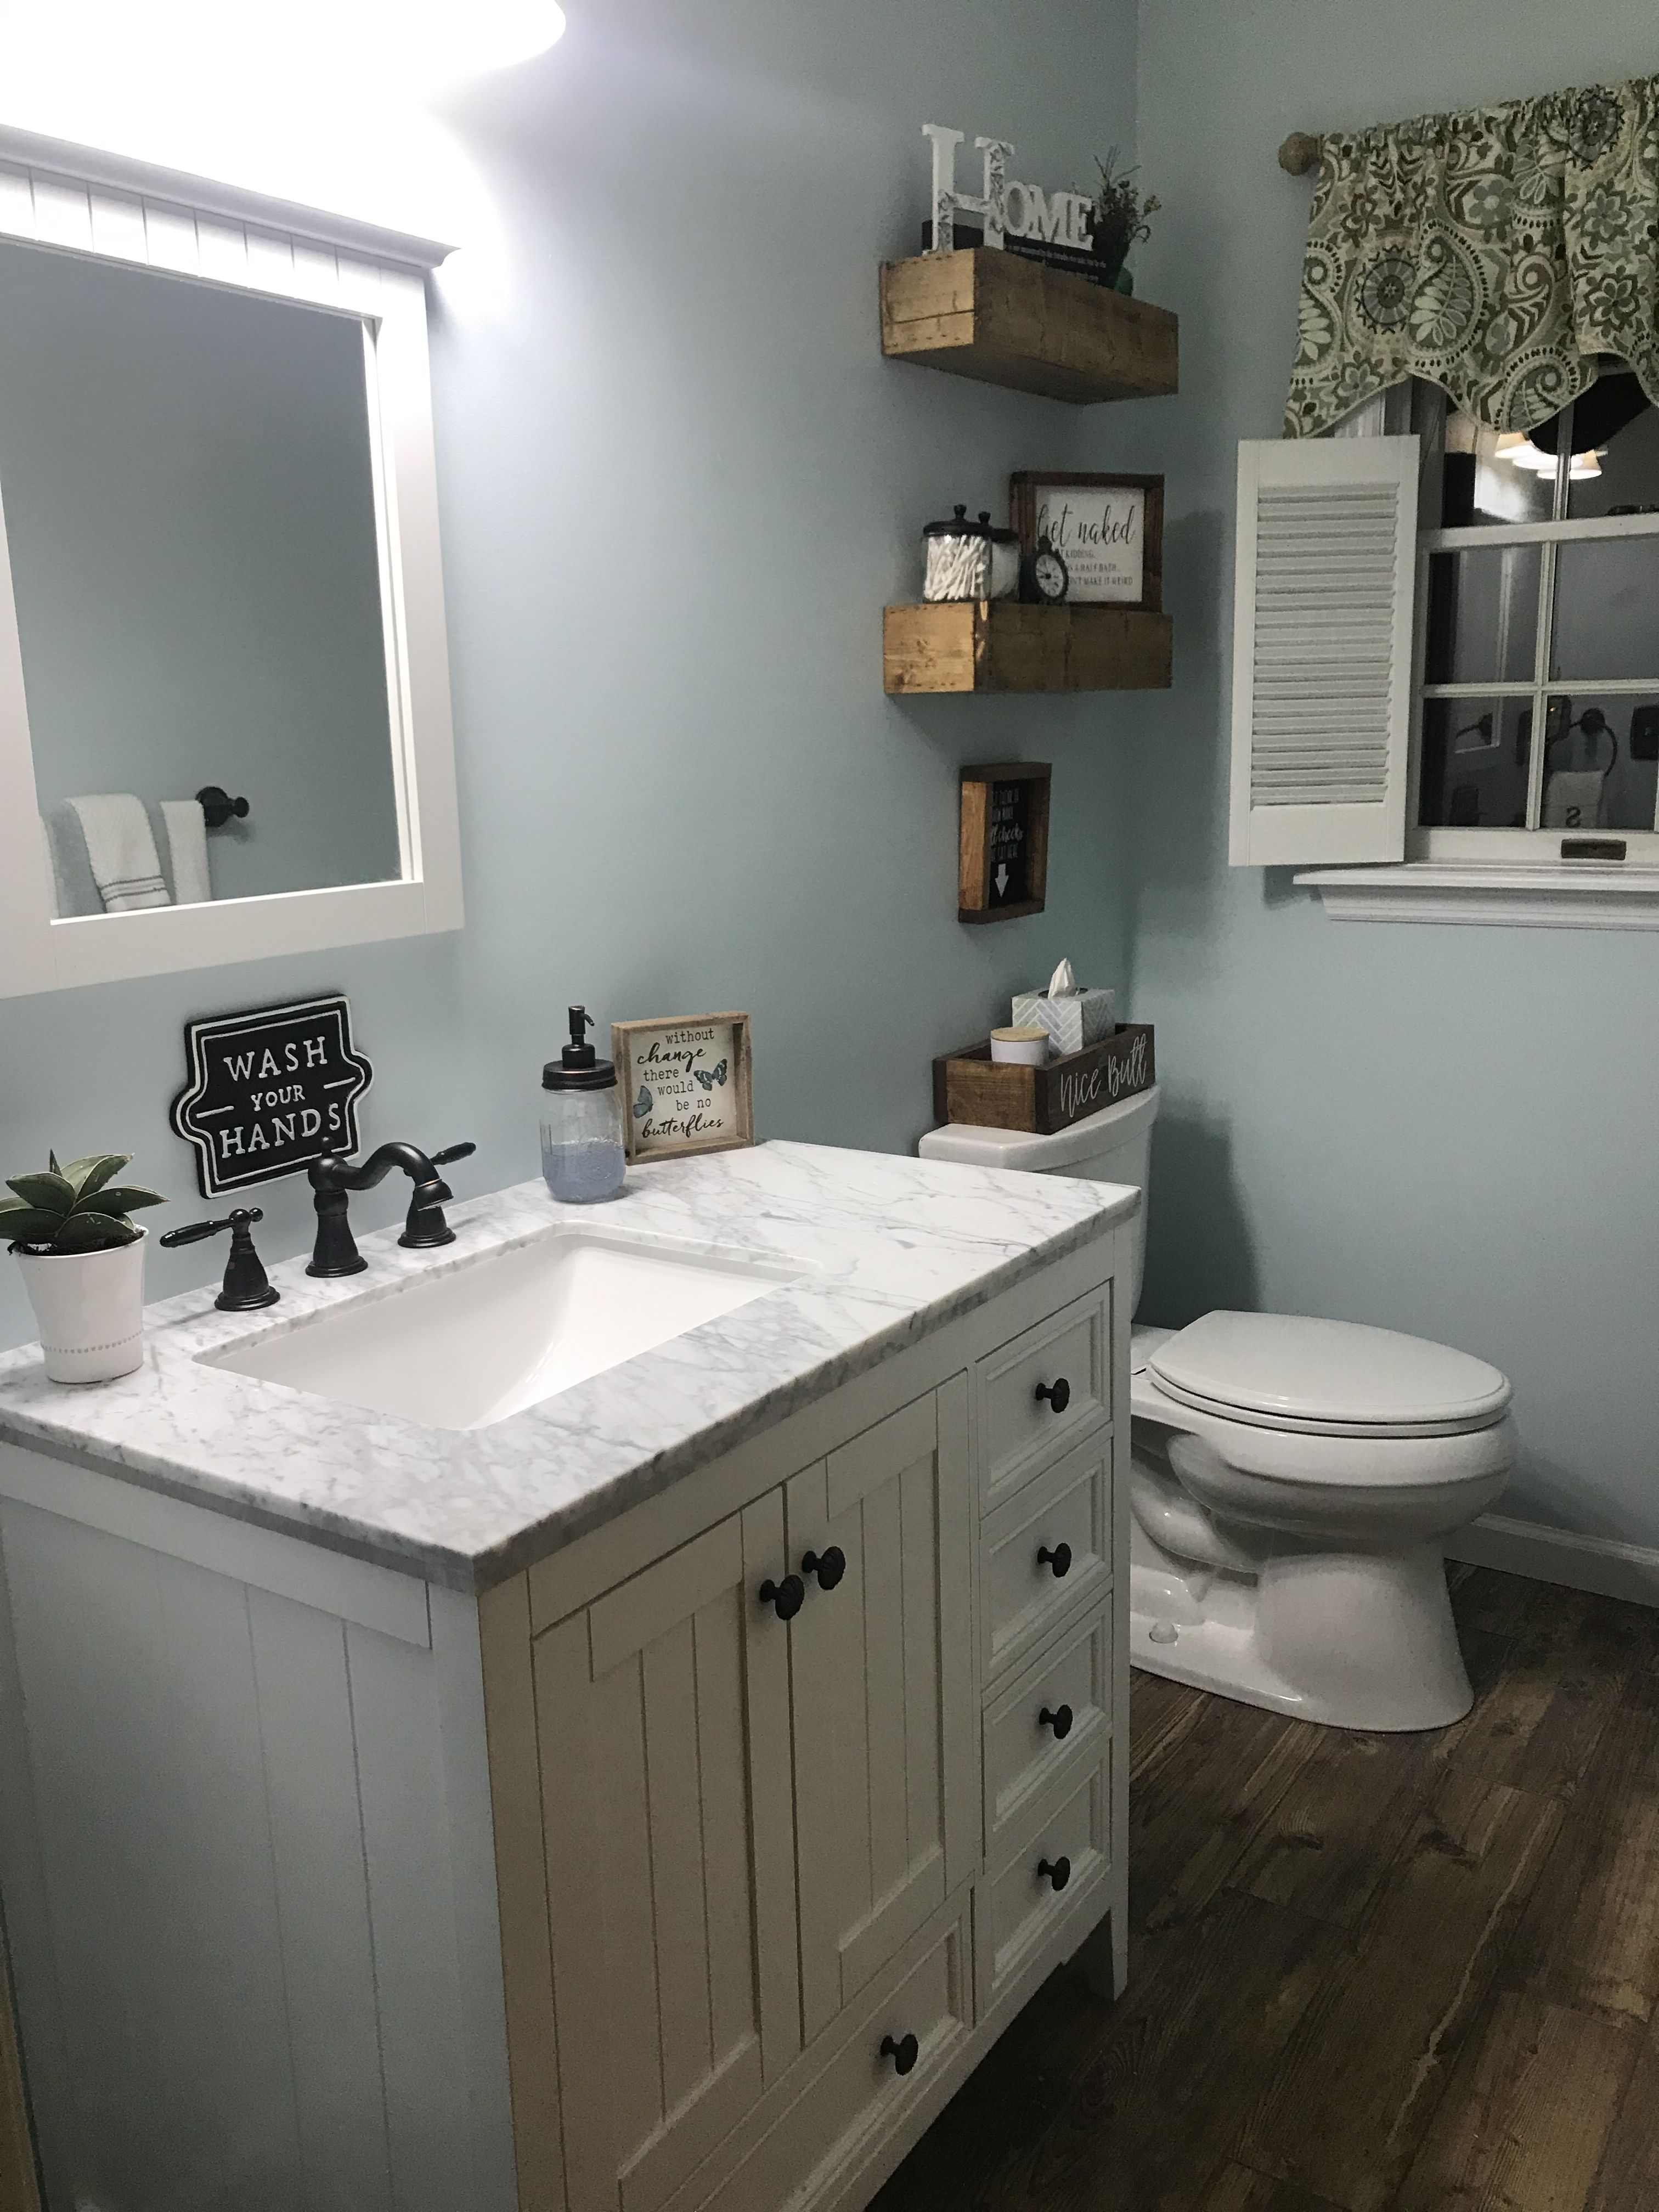 The Vanity is Home Depot, the Light Fixture is Loews the